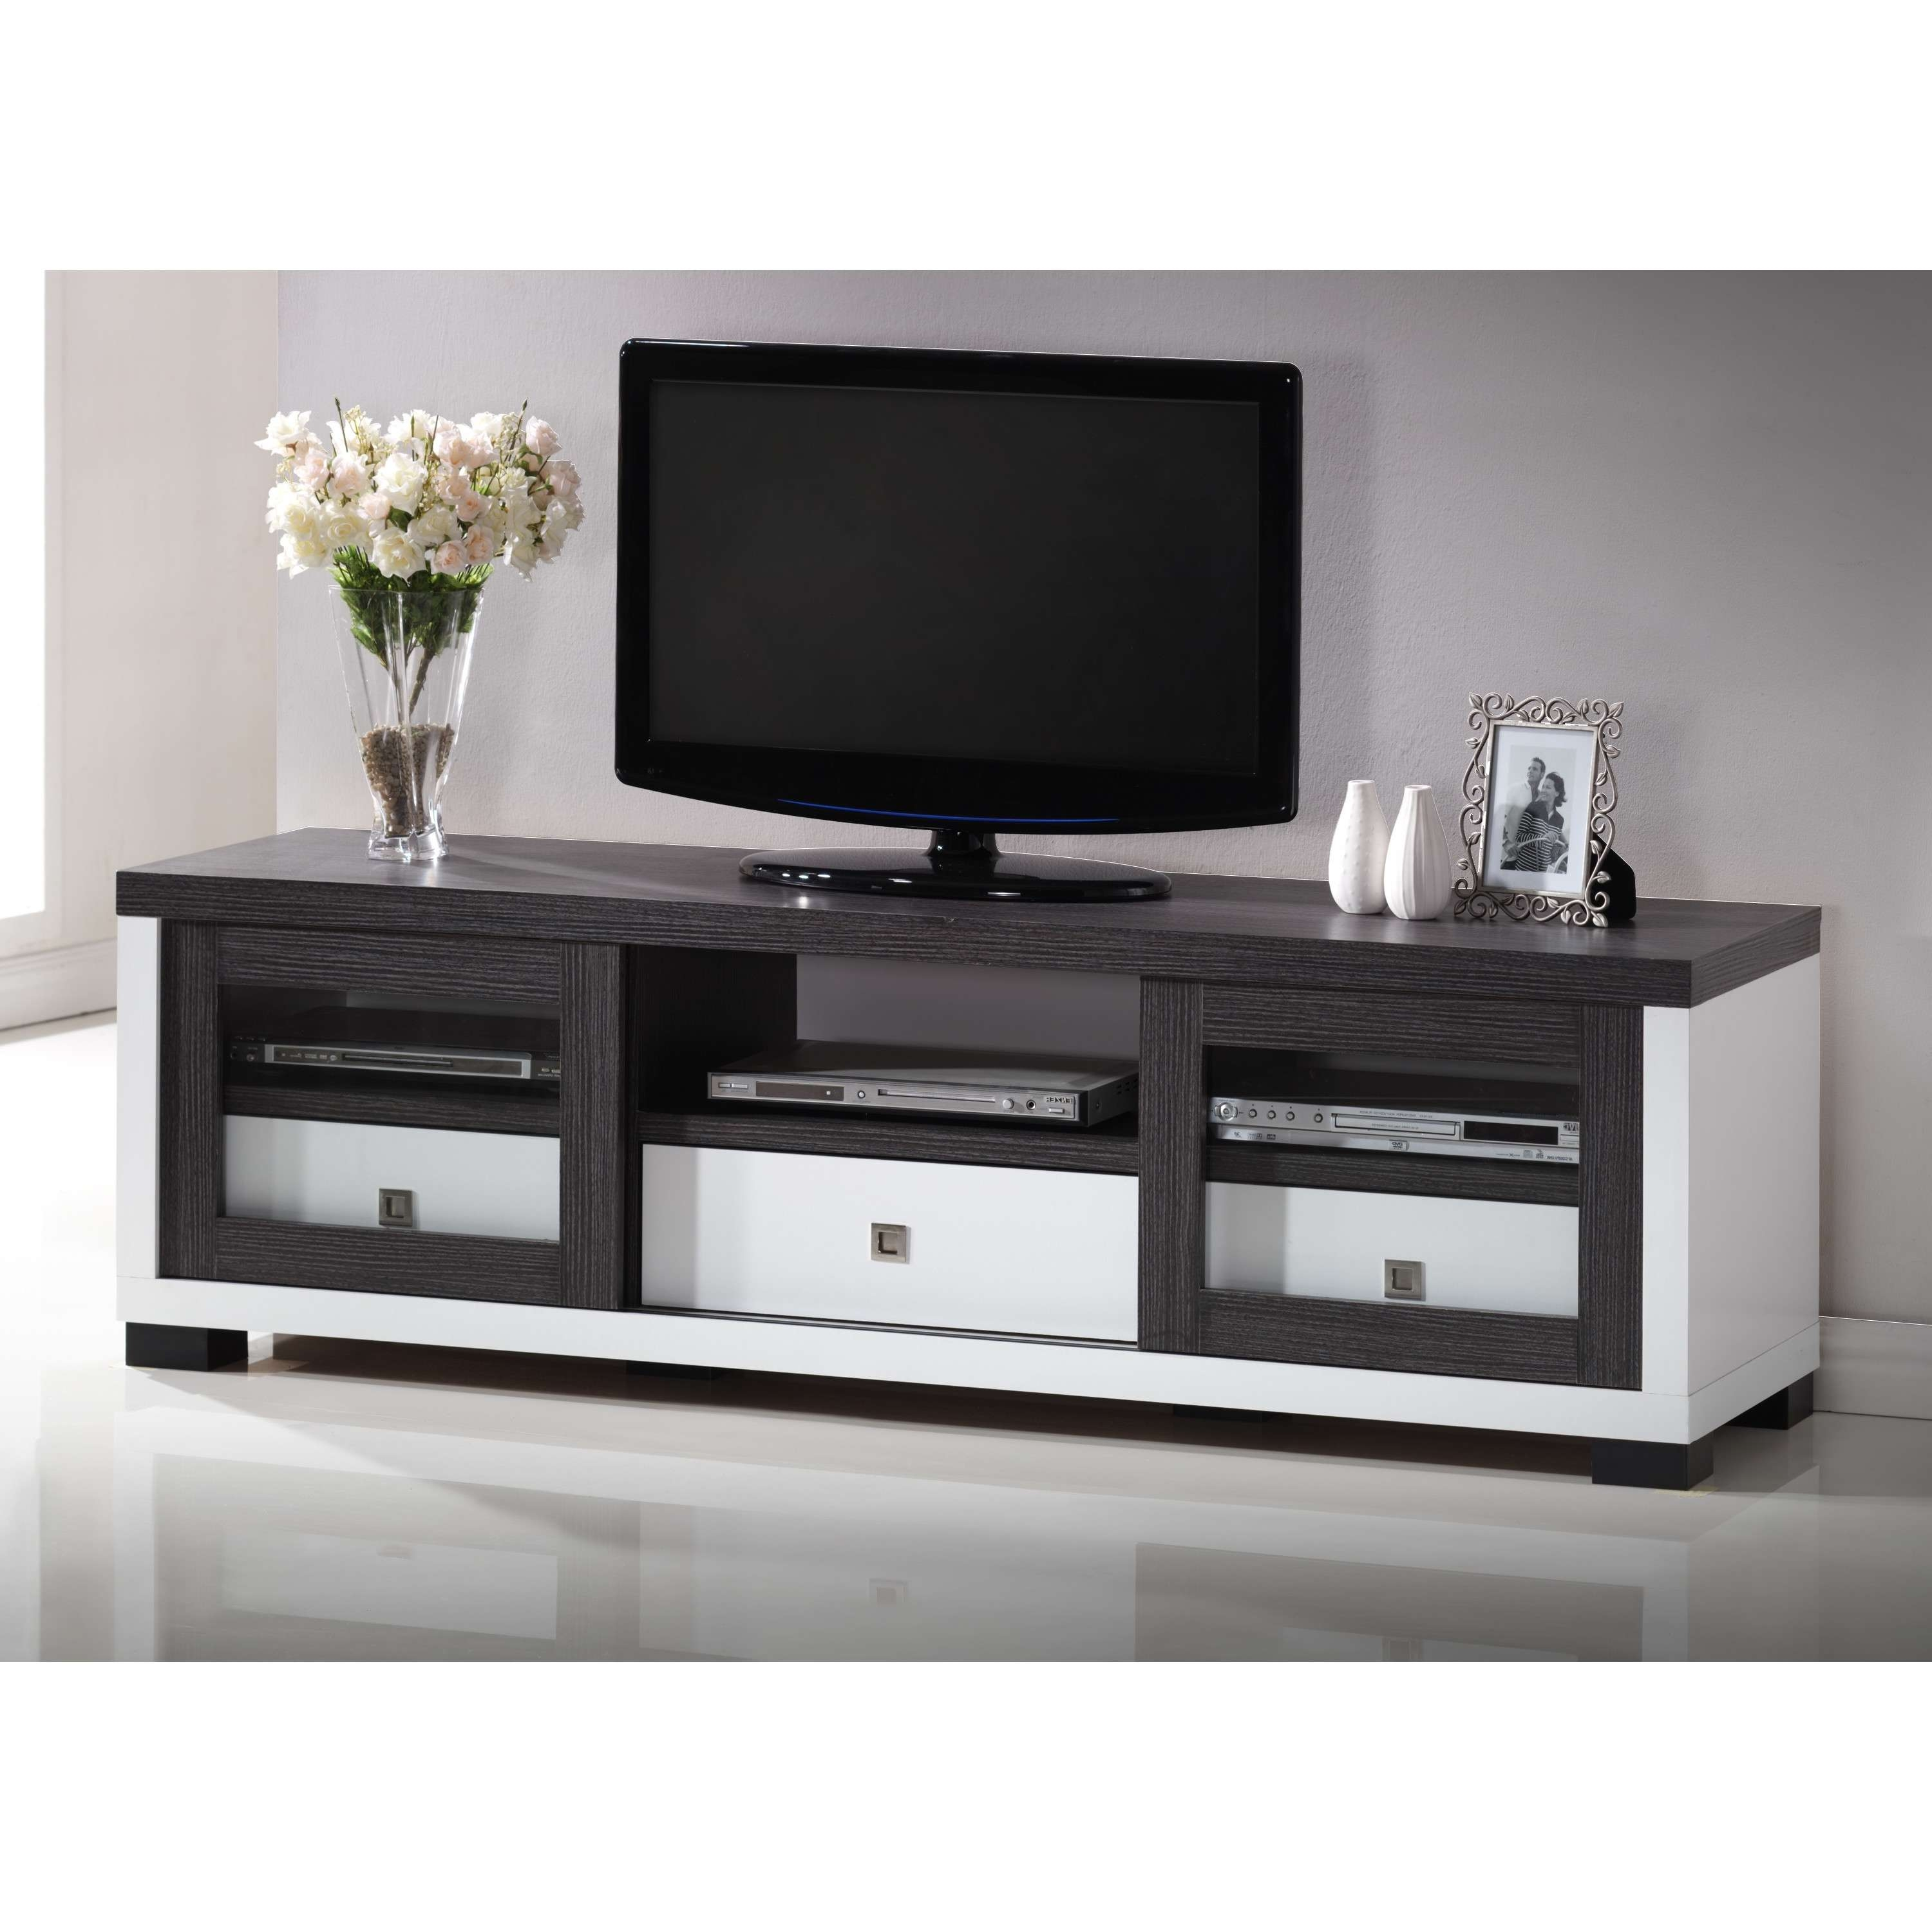 Fancy Triangle Tv Stand 94 On Small Home Remodel Ideas With Throughout Triangle Tv Stands (View 3 of 15)